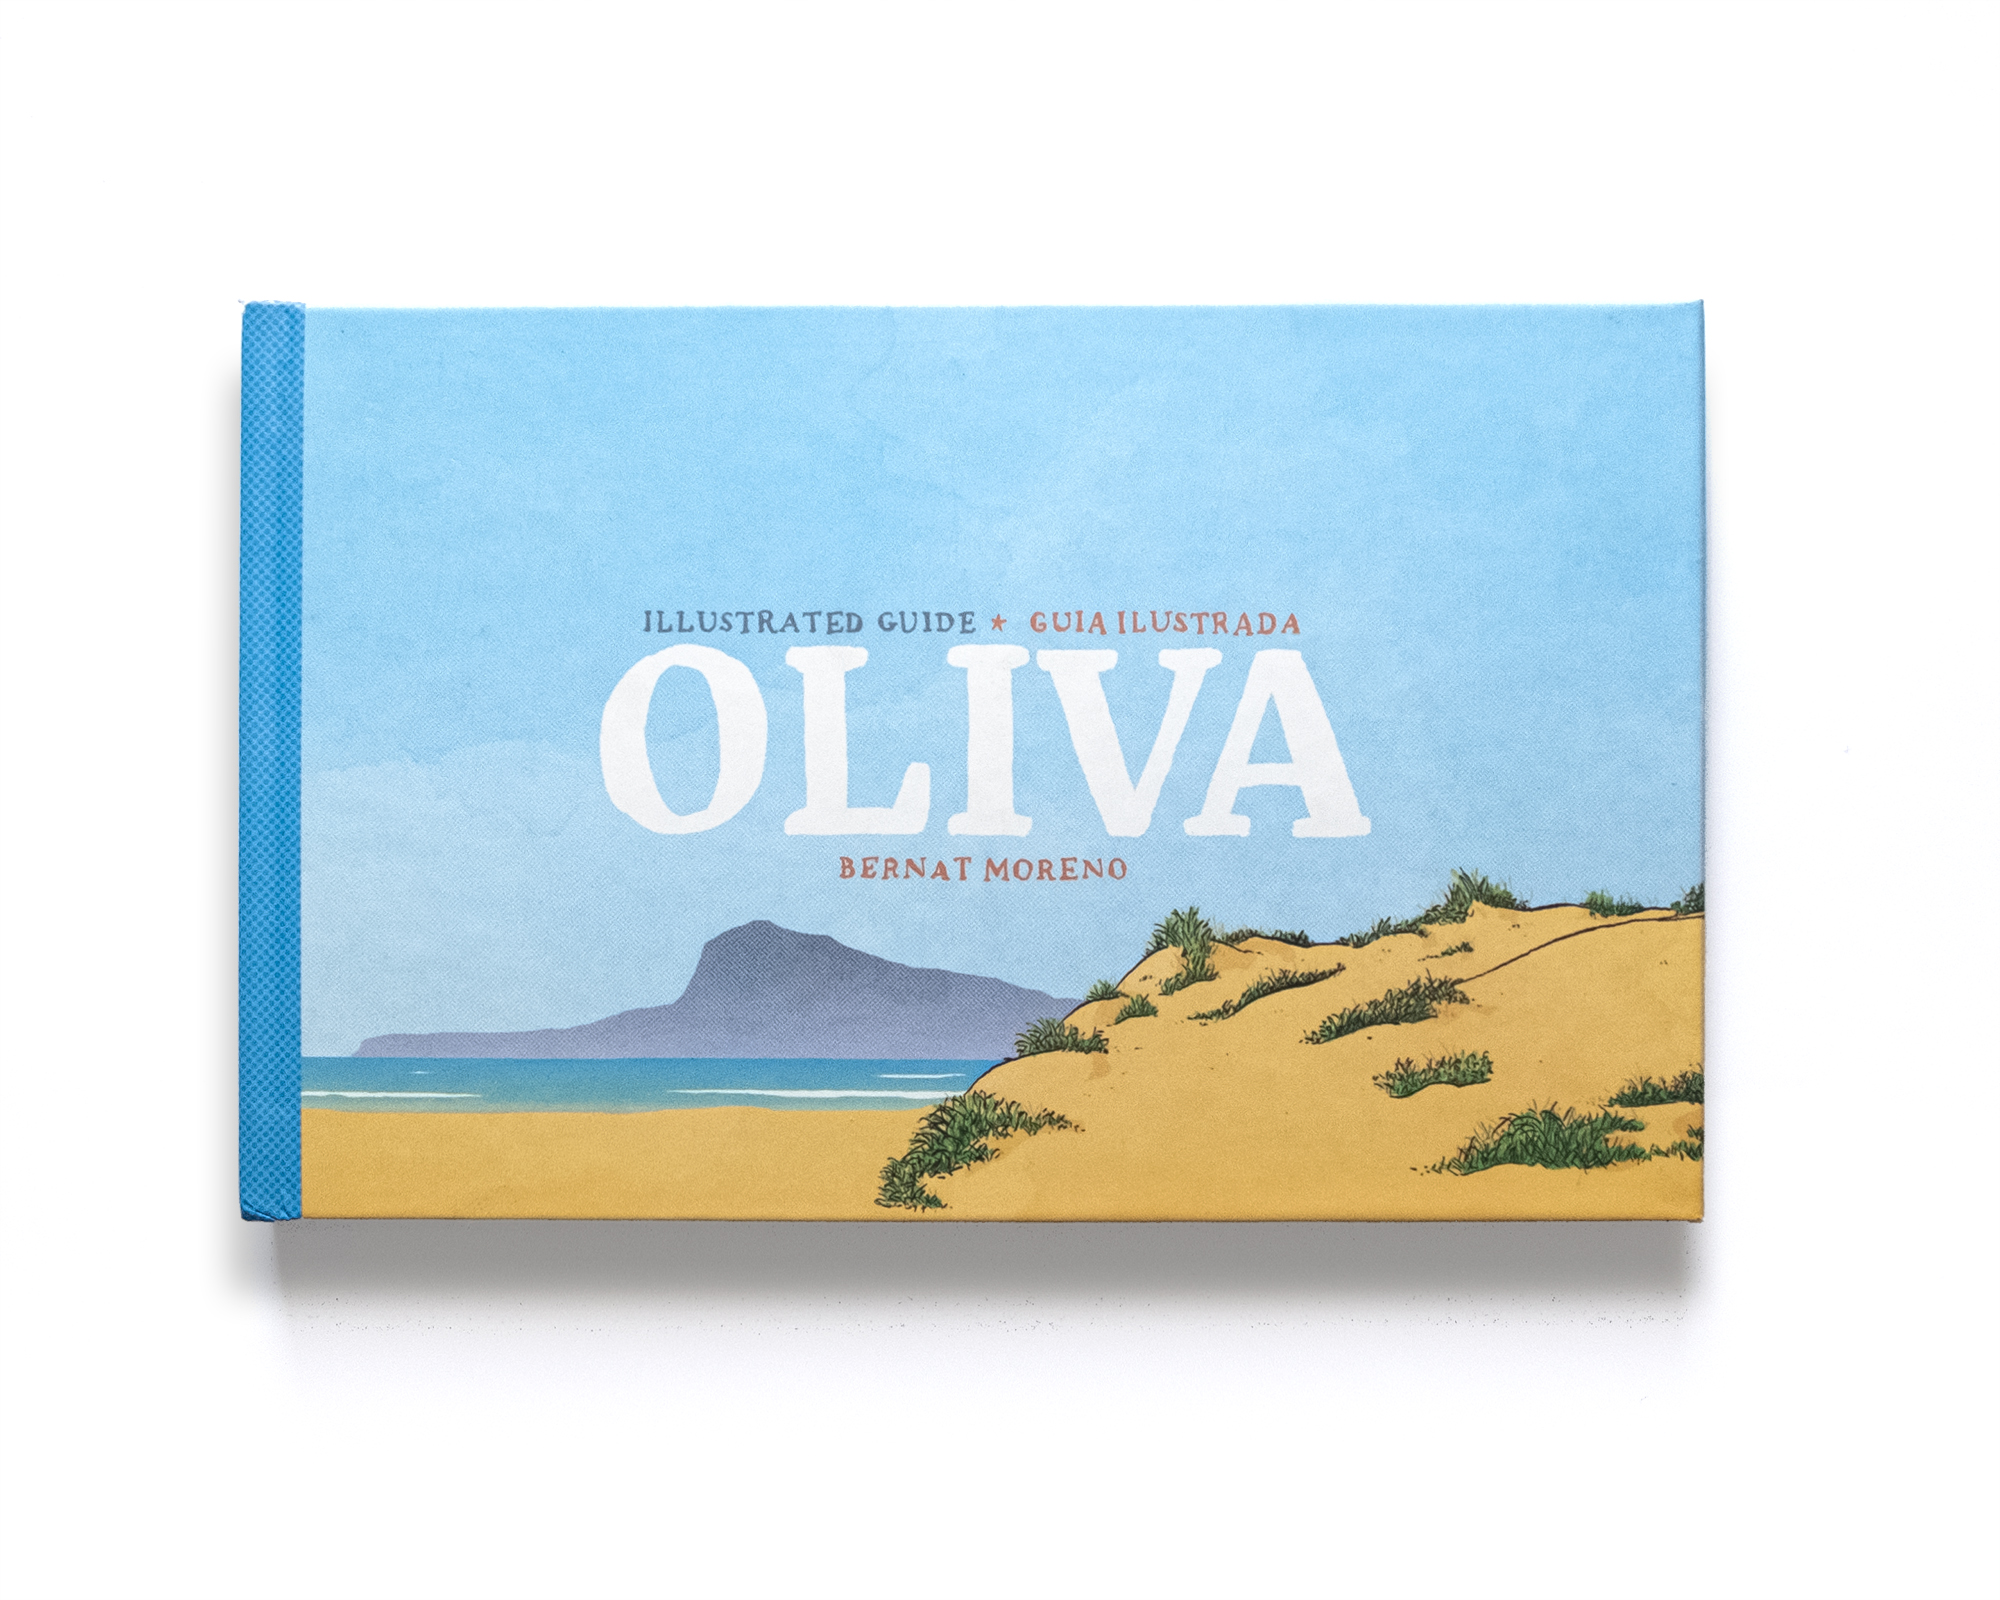 Urban sketchers artbook of the valencian town of Oliva, Watercolor drawings